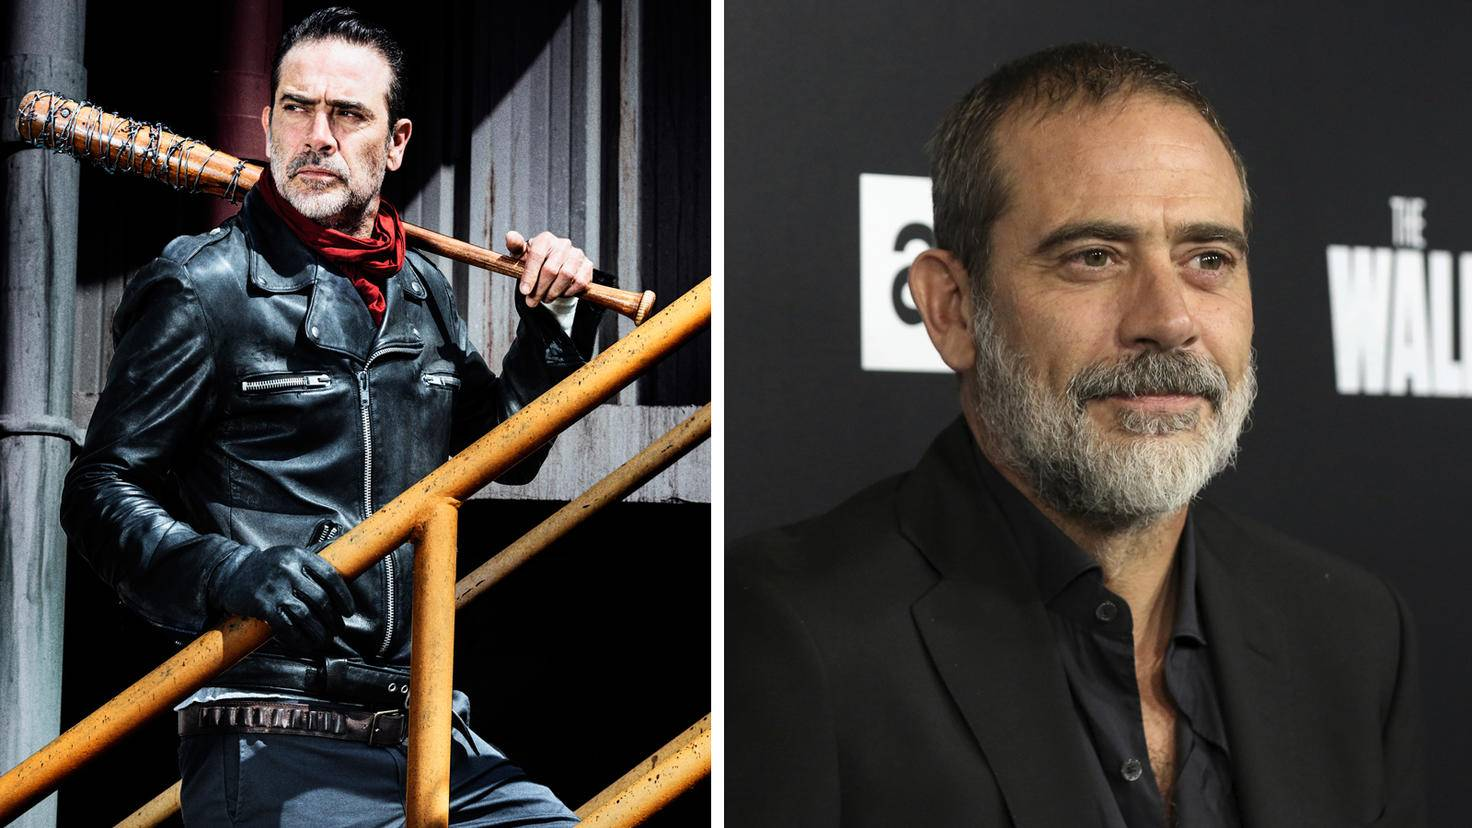 The Walking Dead-S08-Negan-AMC-Jeffrey Dean Morgan-picture alliance AP Photo-113044989